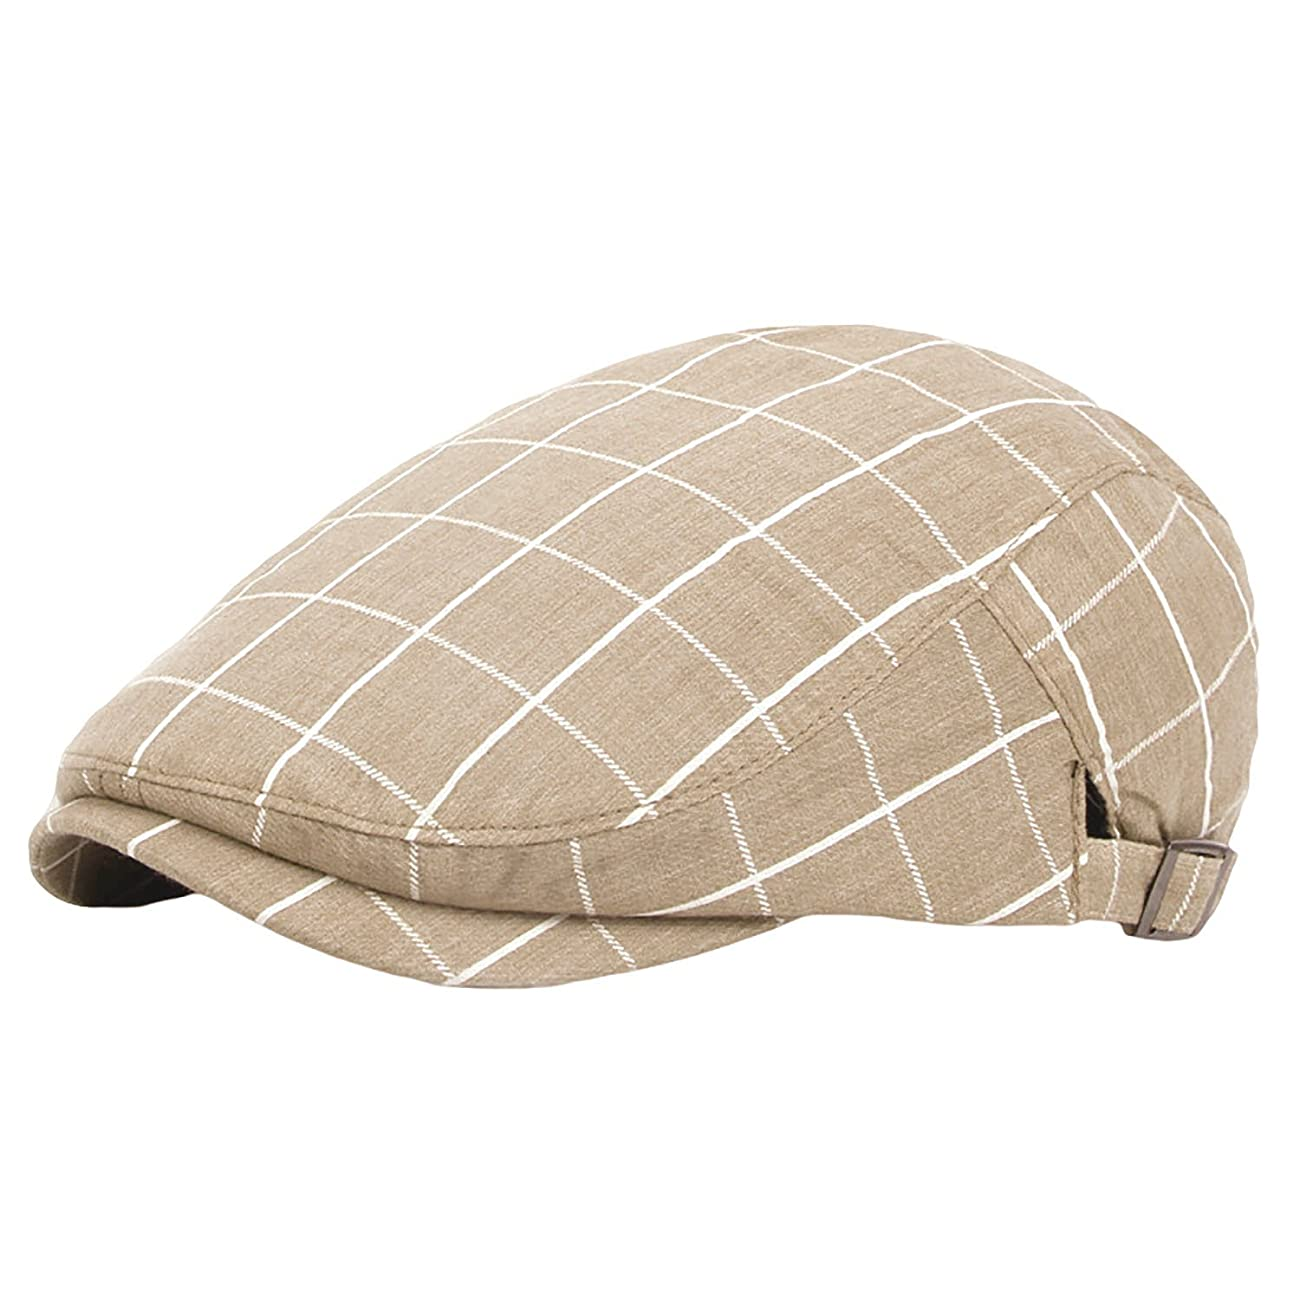 IL Caldo Unisex Summer Cotton Vintage Plaid Beret Cap Drivers Newsboy Cap 0